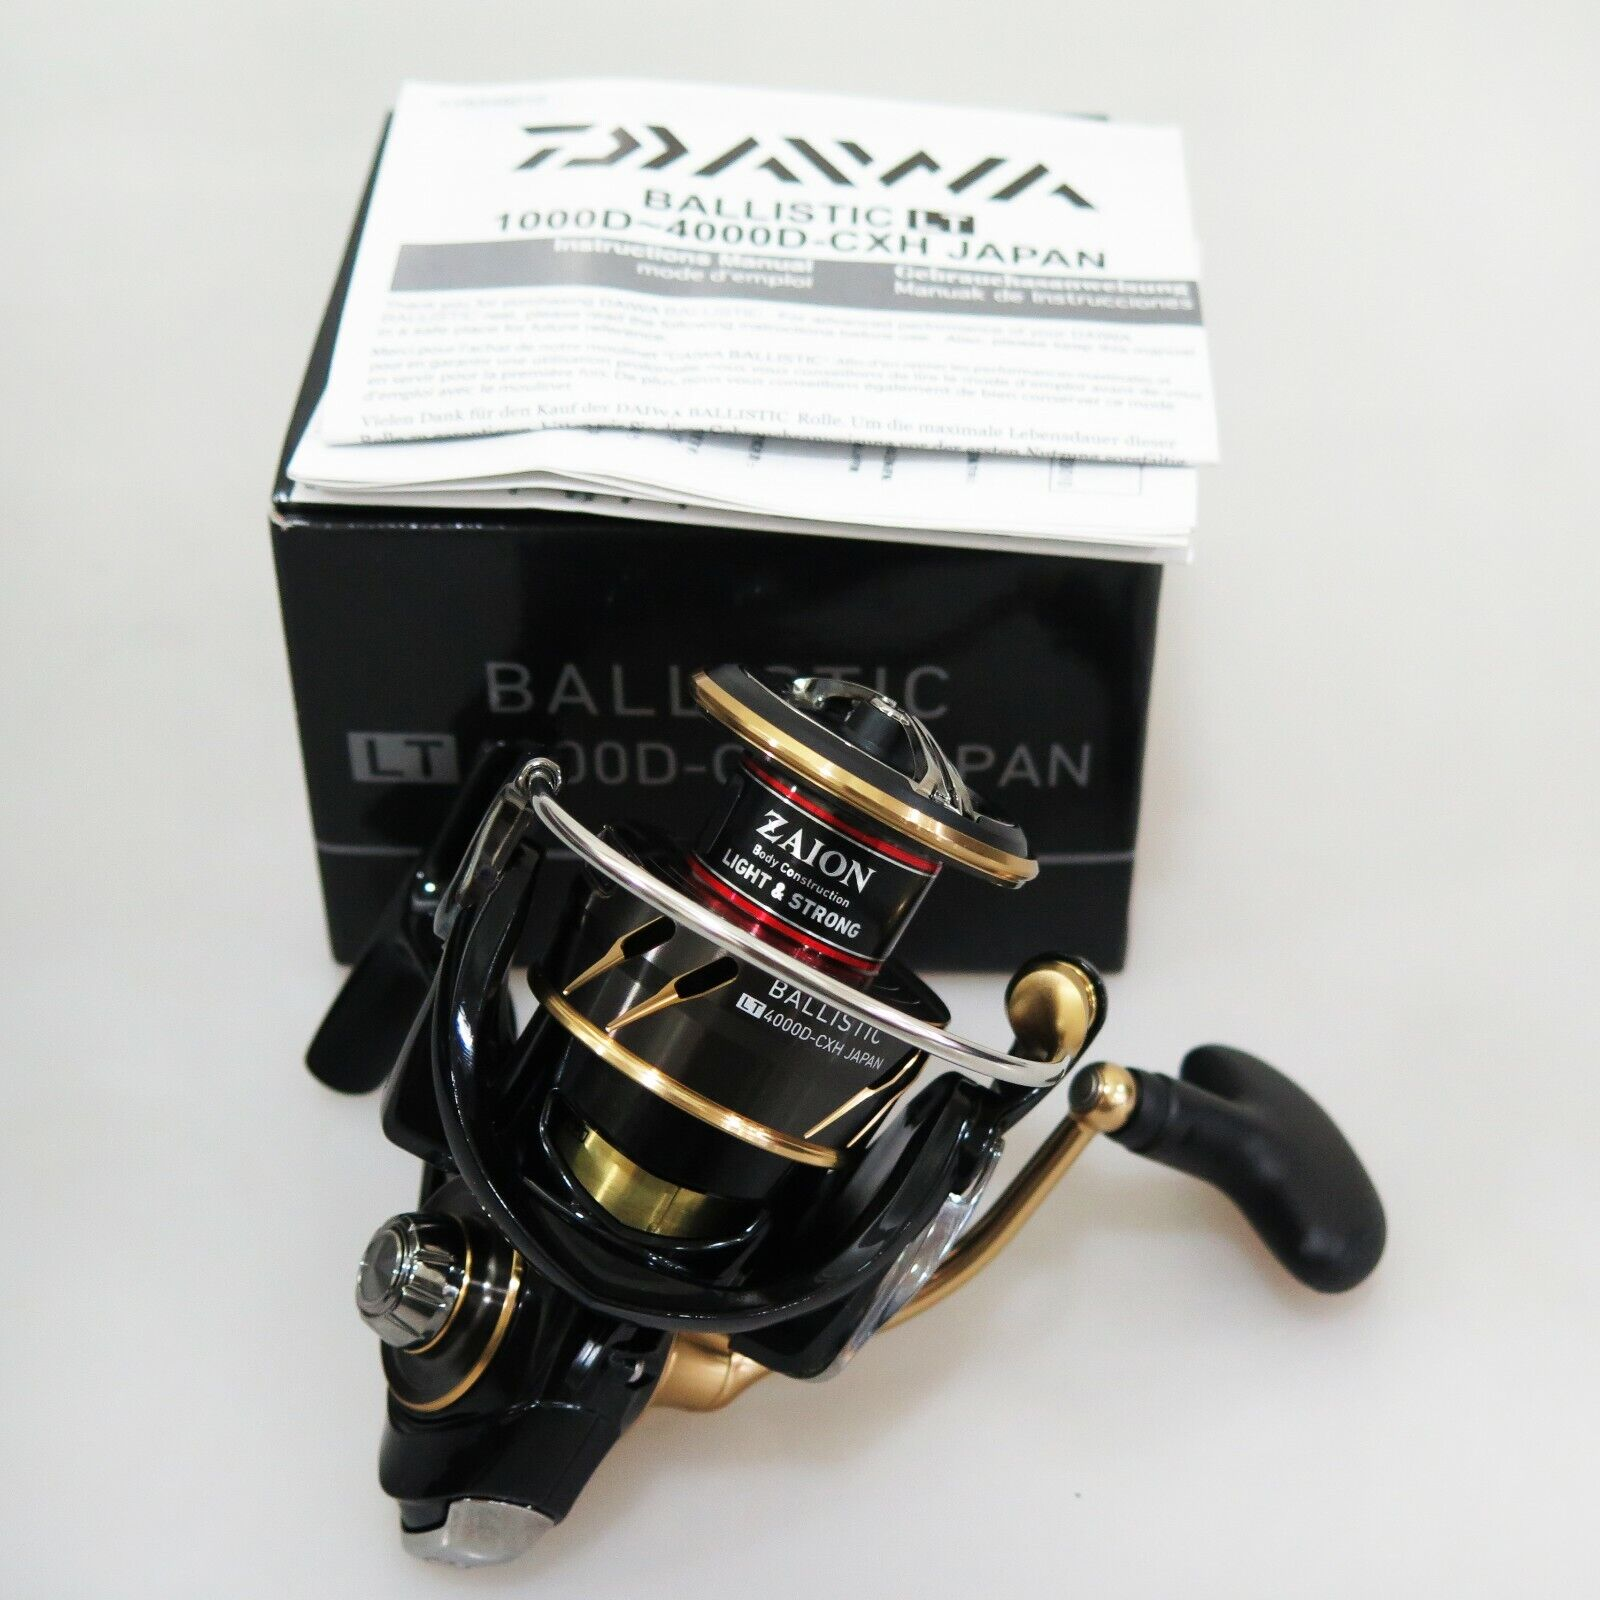 2018 DAIWA BALLISTIC LT 4000D-CXH Japan Spinning Reel Fedex shipping 2days to Us